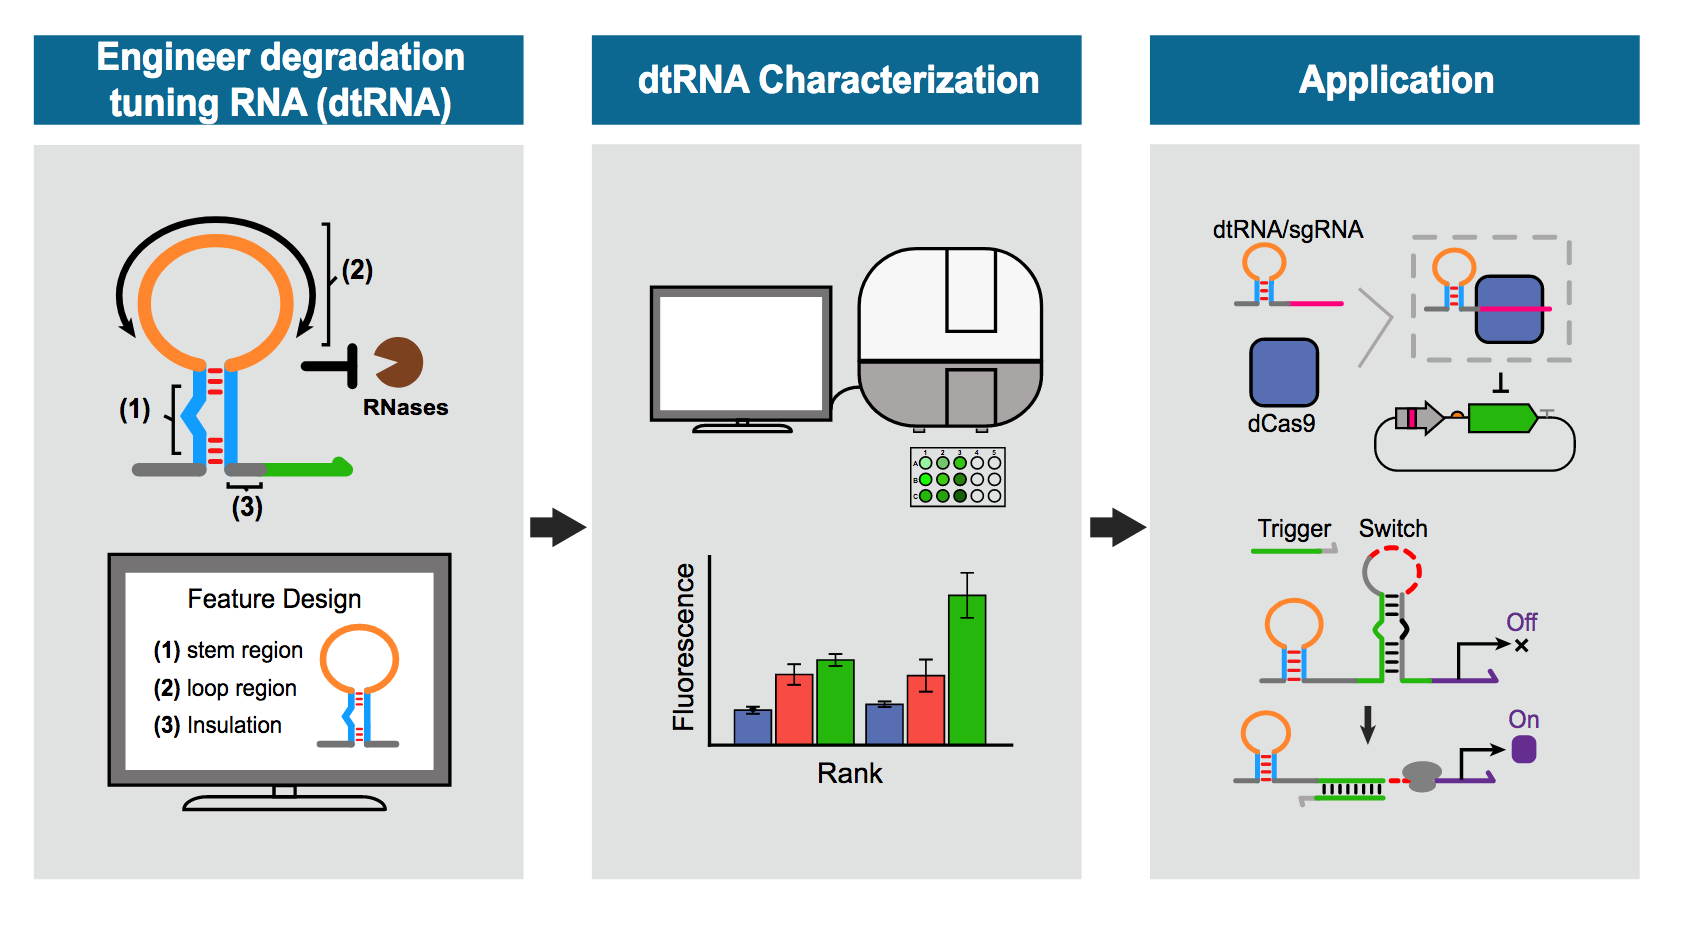 illustration shows engineering of degradation tuning RNAs by characterizing their structural features.